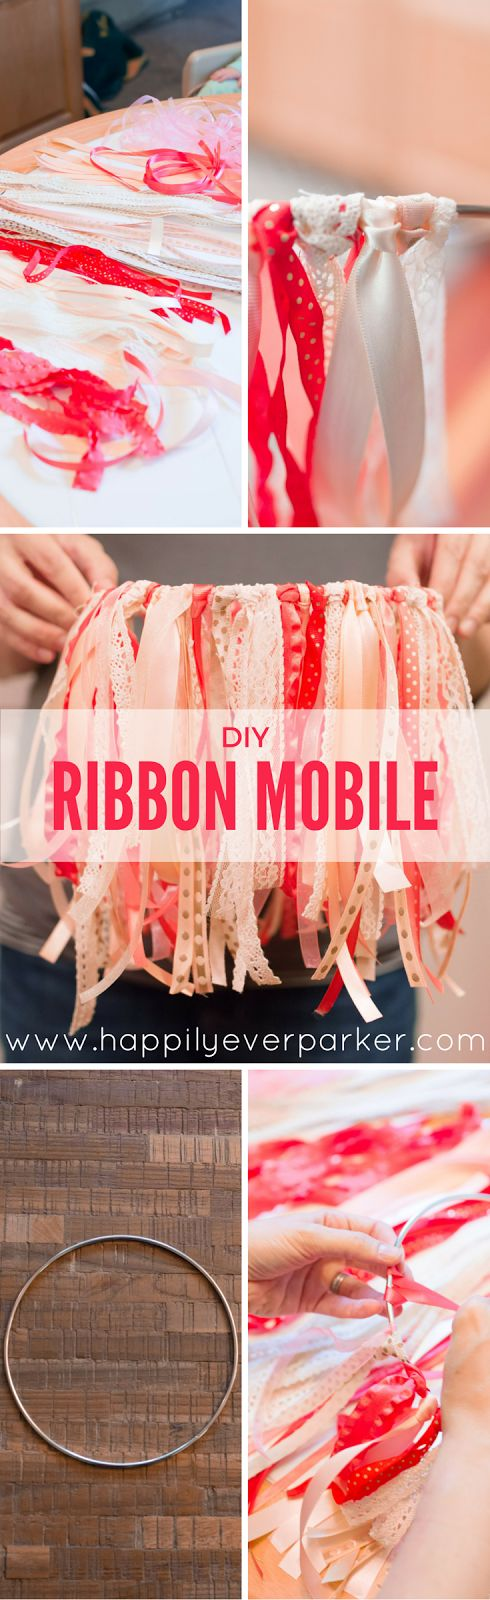 Happily Ever Parker | DIY Ribbon Mobile